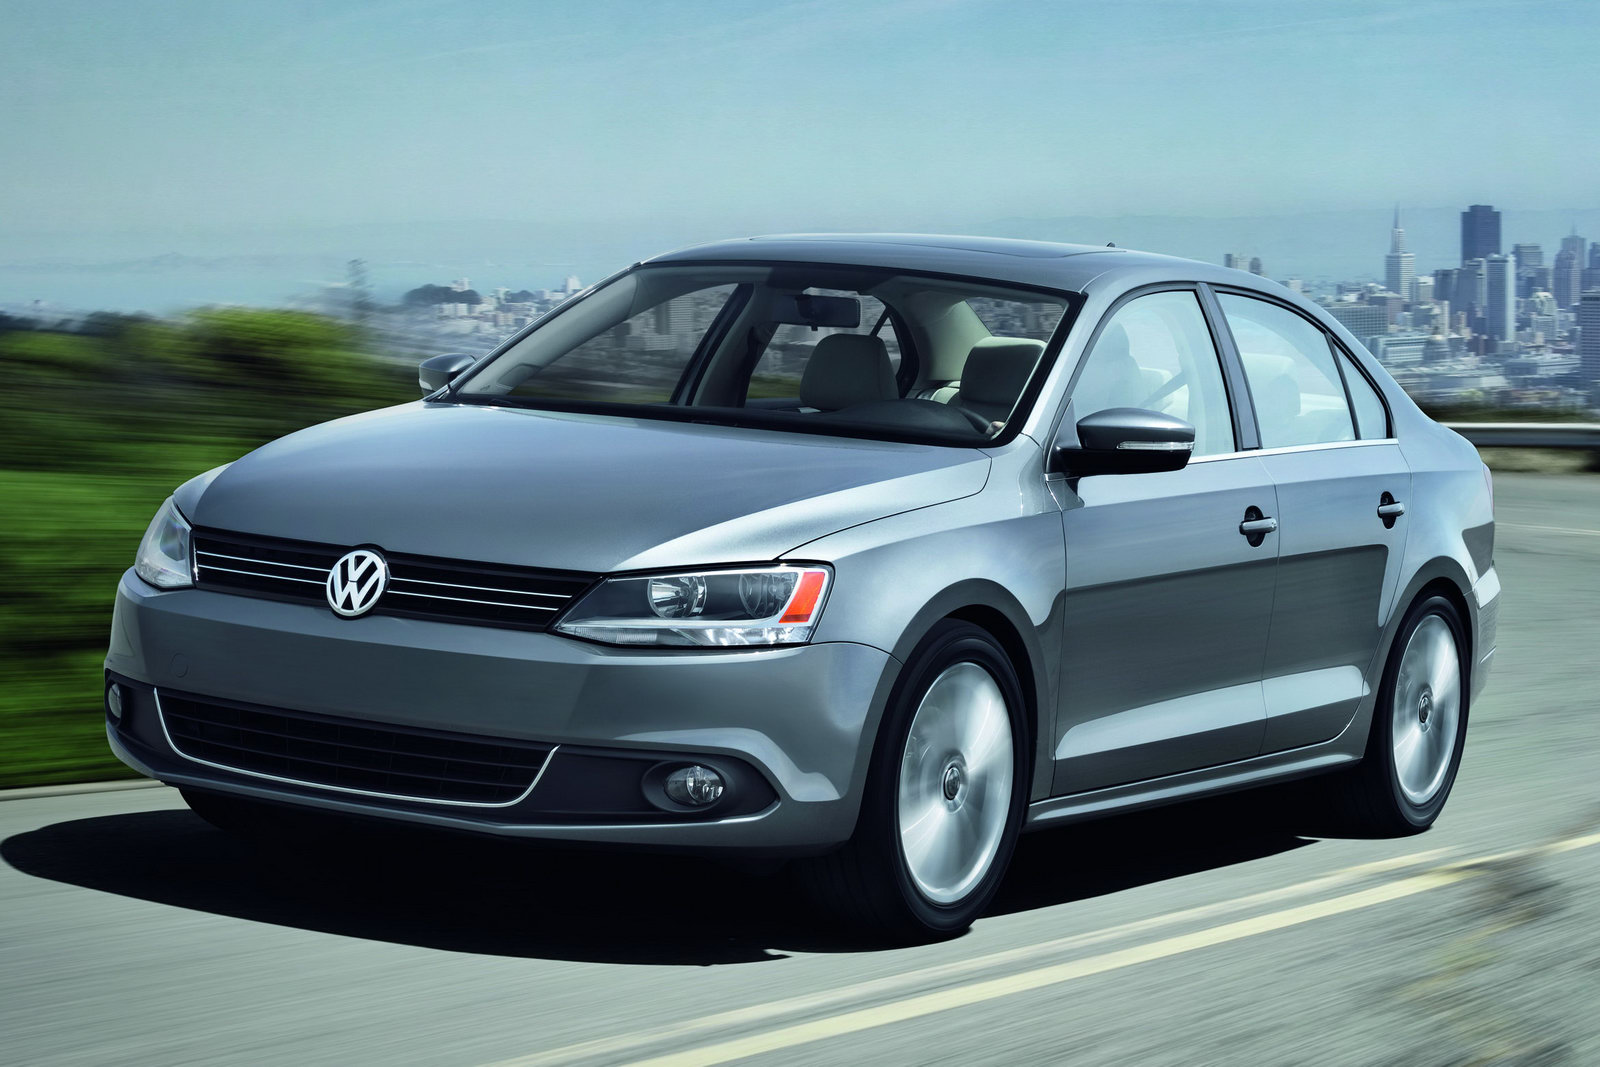 Index of /data_images/models/volkswagen-jetta-iv/